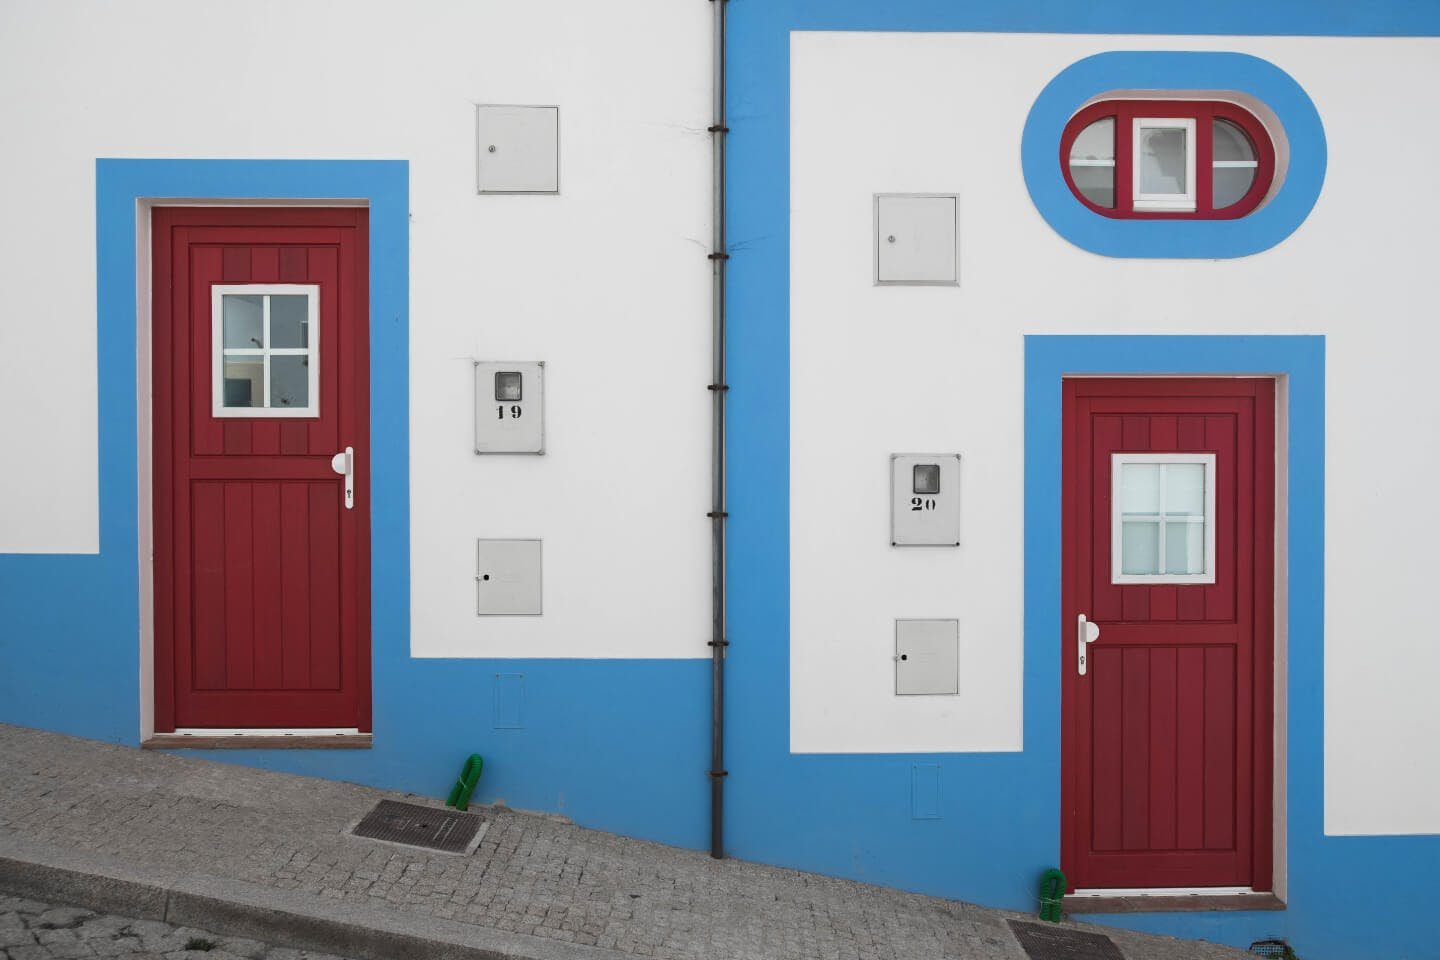 Charming white houses with blue trim and red doors in the Algarve.